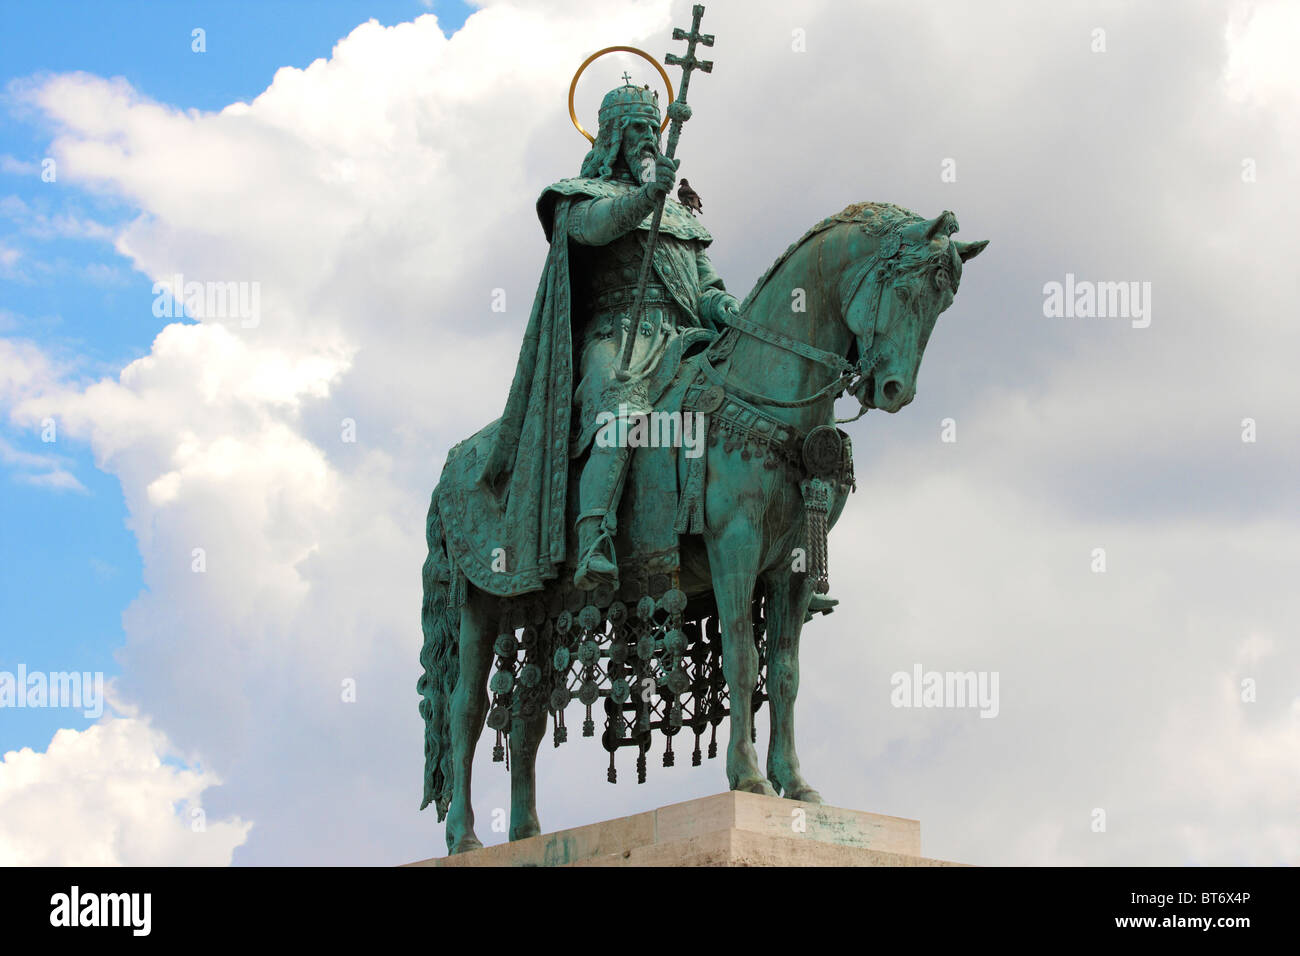 King Saint Stephen statue in Budapest, Hungary Stock Photo